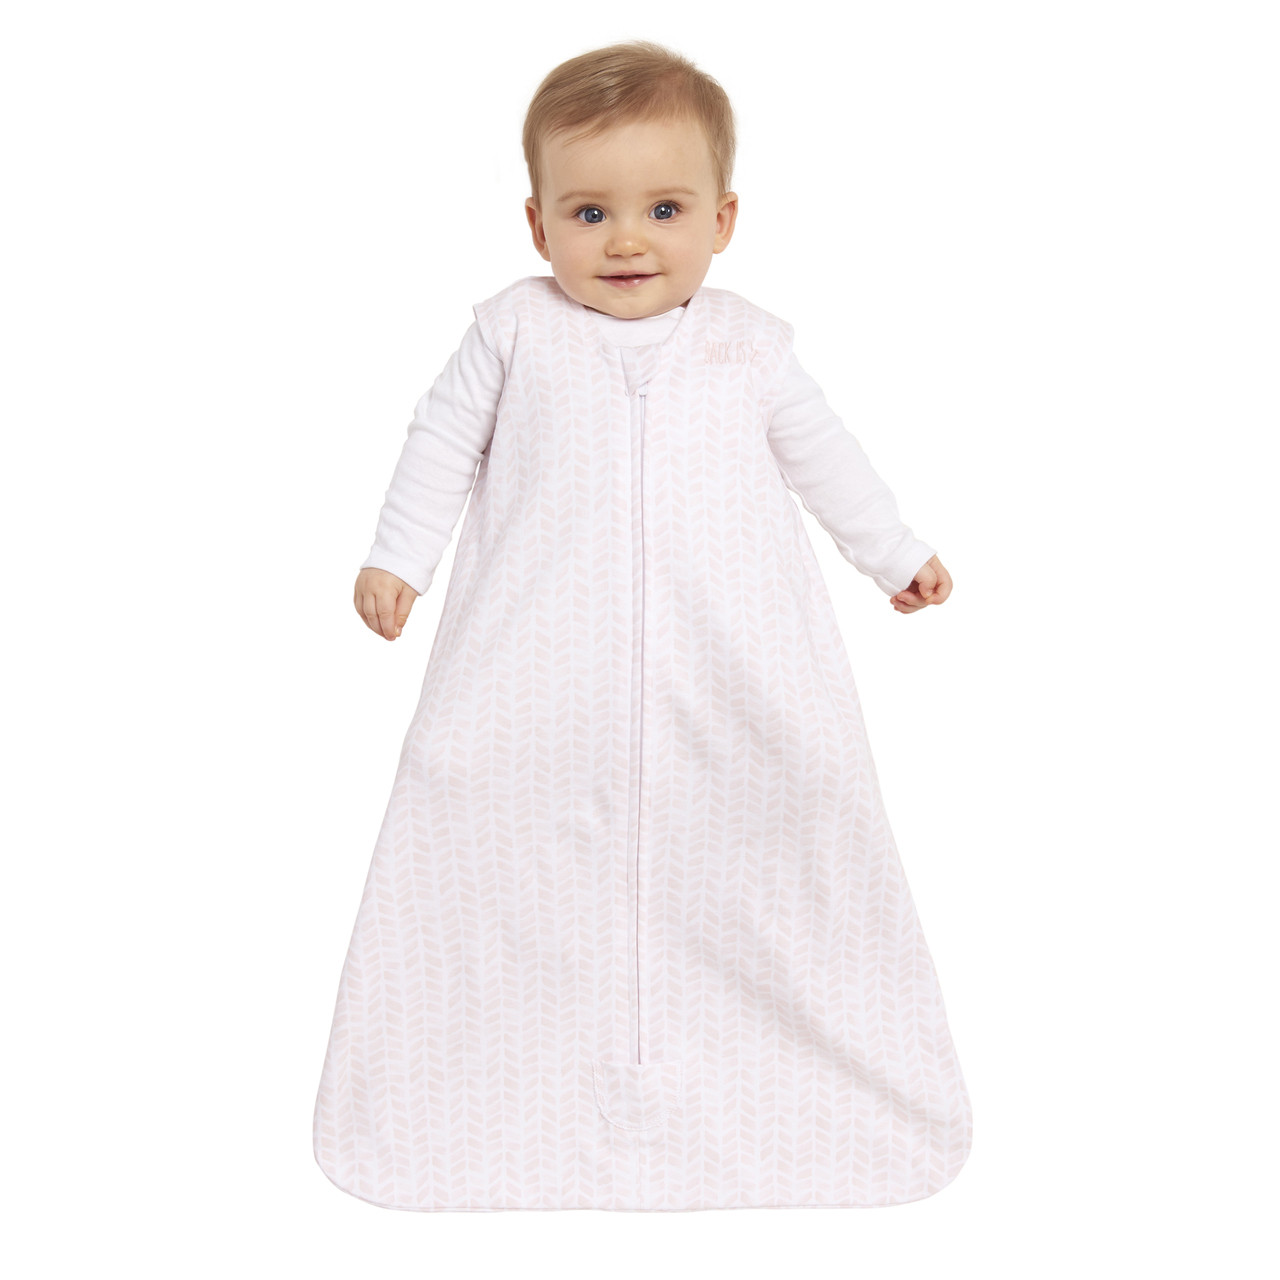 HALO® SleepSack® wearable blanket platinum100% CottonBlush Chevron 42ccd3f39